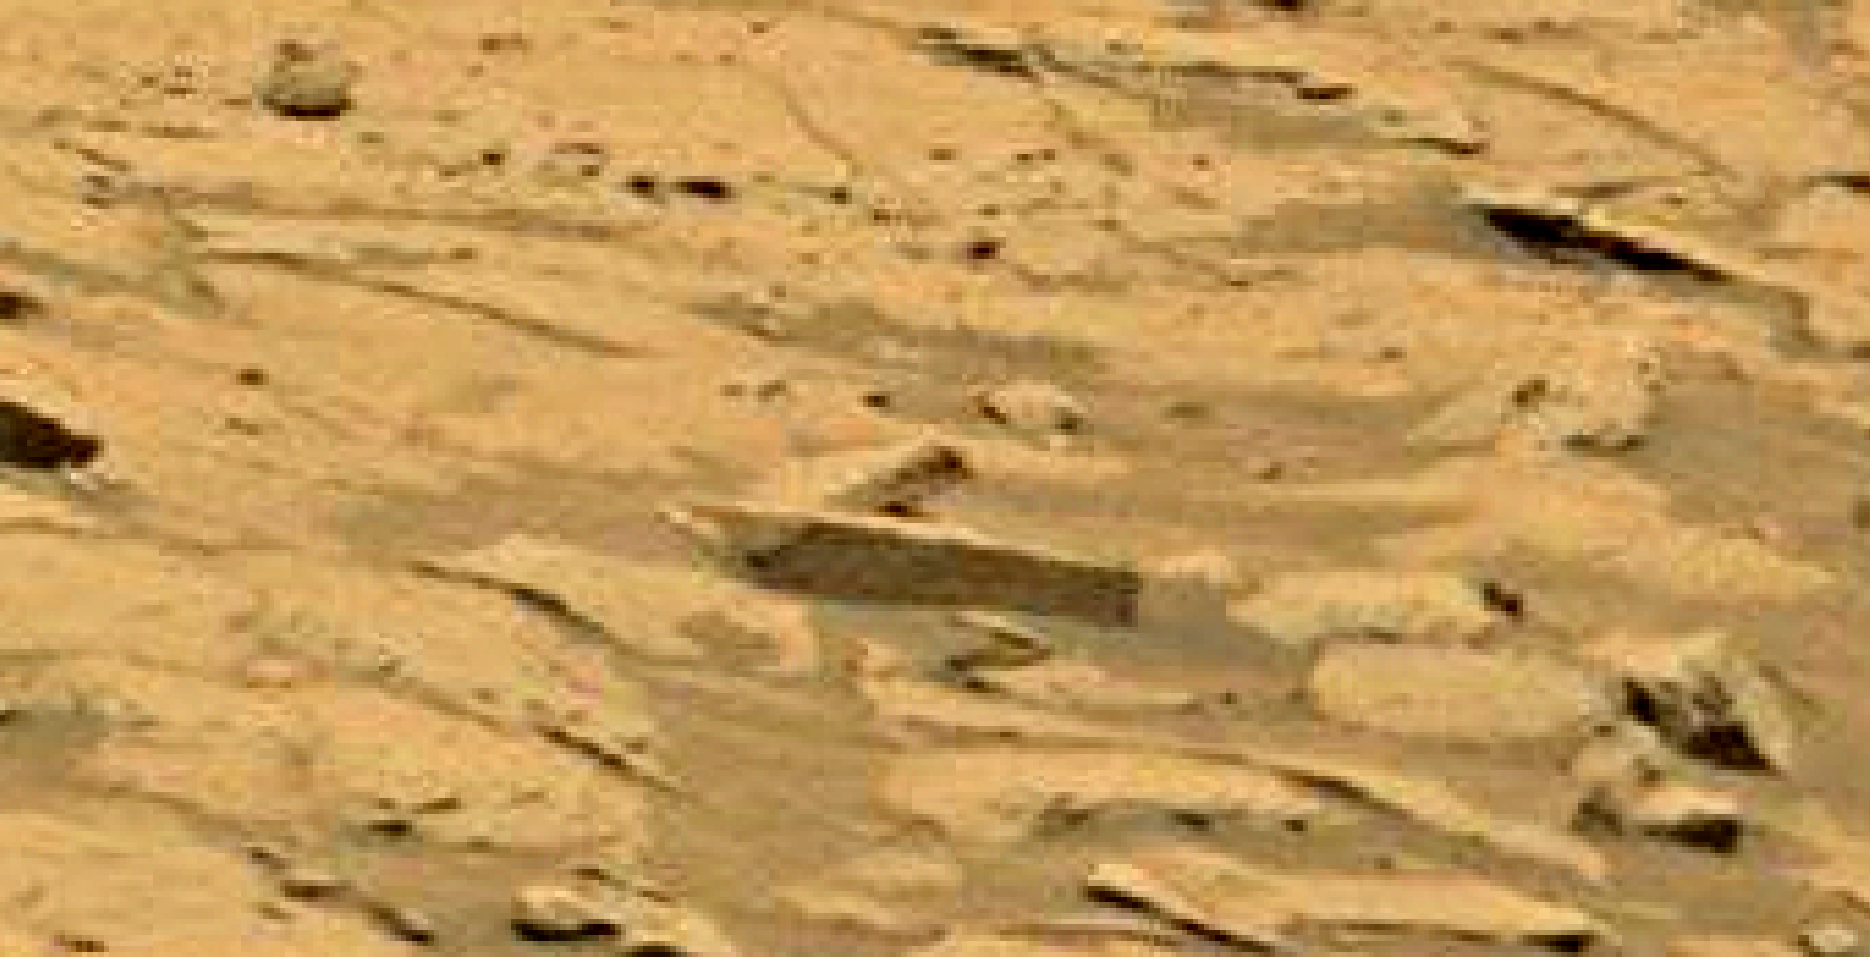 mars sol 1353 anomaly-artifacts 58a2 was life on mars